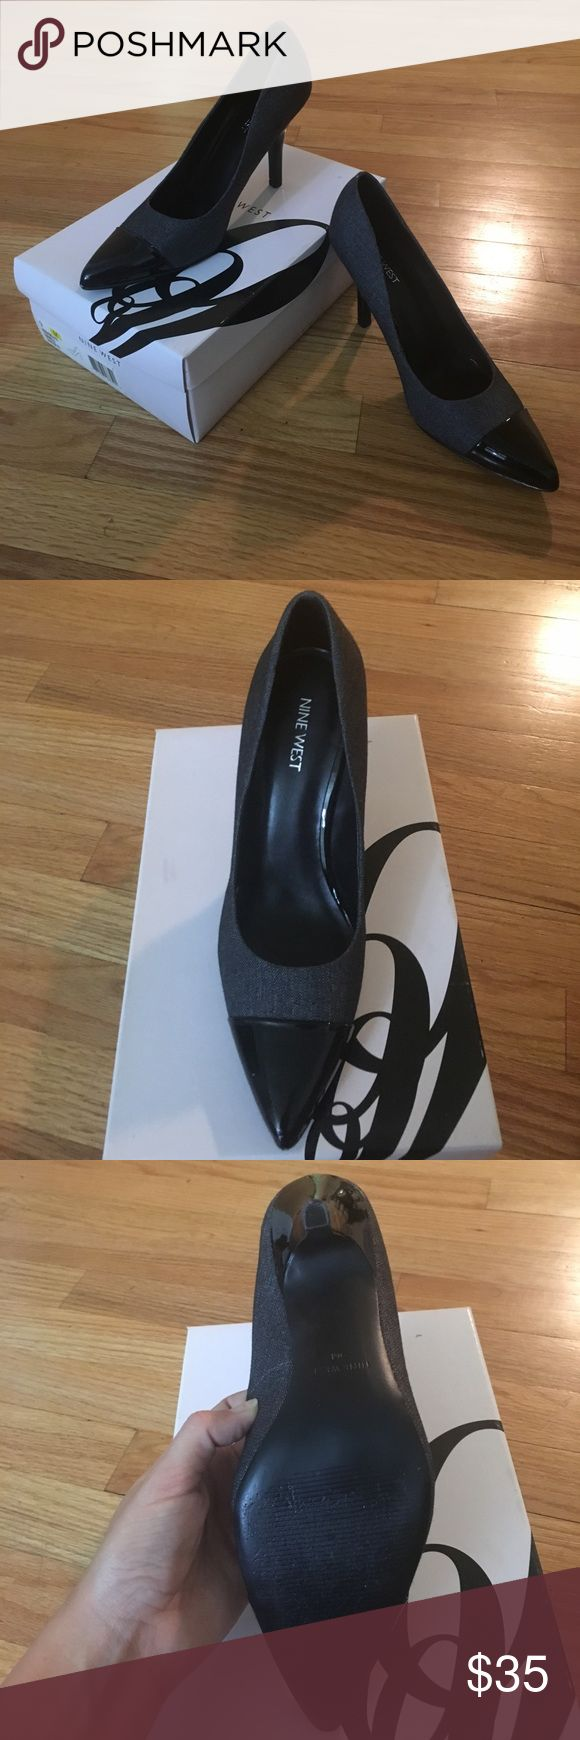 Nine West Black Heels Pre-BLACK FRIDAY SALE 🎉 Nine West black heel! Patent leather toe. Size 9. Little too small for me. In perfect condition. Worn once or twice. Perfect for a date or work. Classic black heel. Nine West Shoes Heels